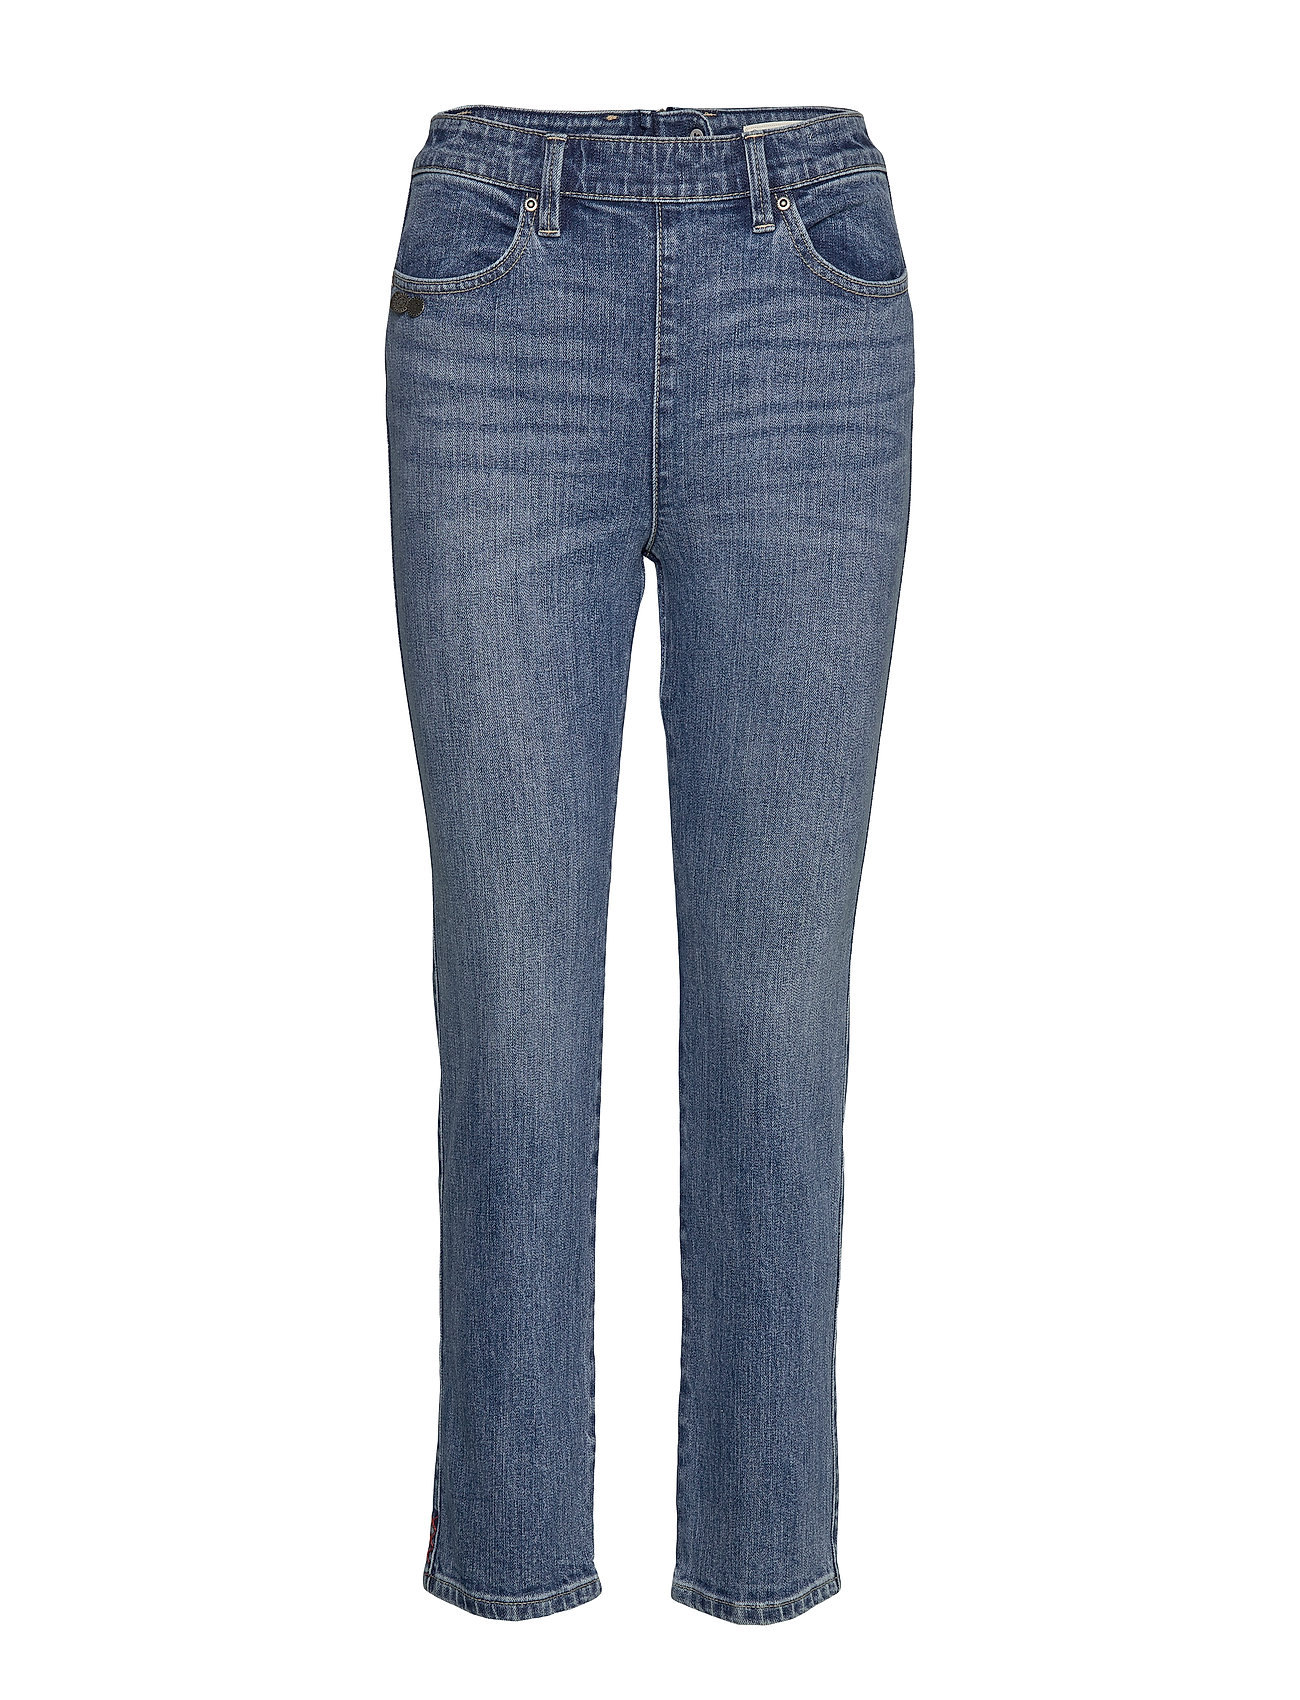 ODD MOLLY I'm Game Jeans - MID BLUE